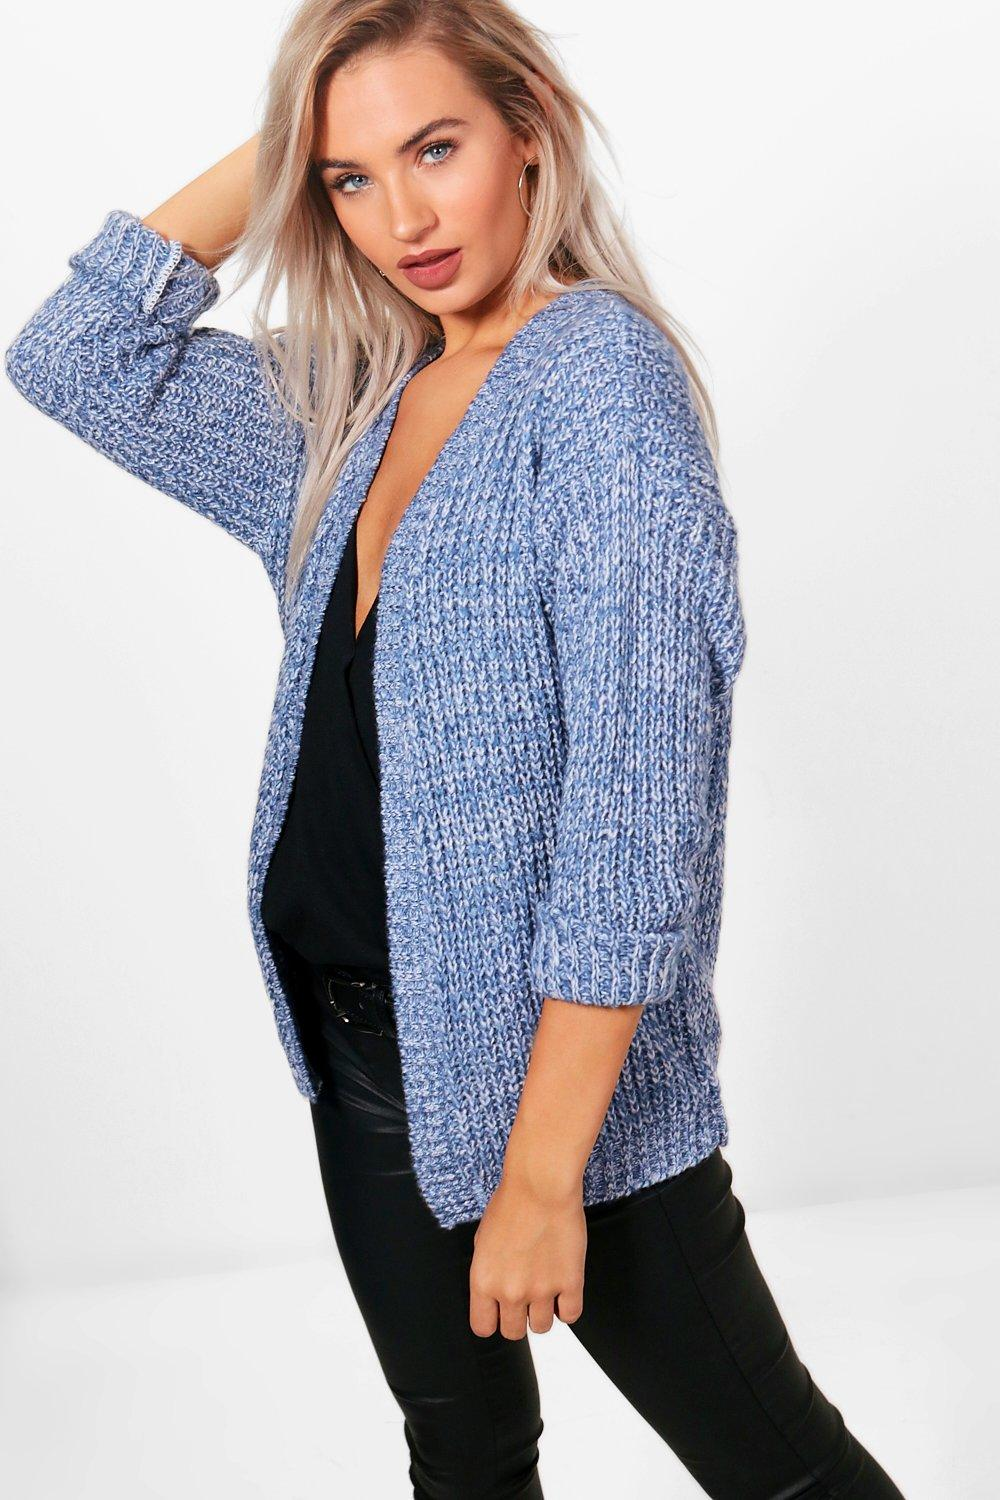 Knitting Pattern For Edge To Edge Cardigan : Isadora Edge To Edge Grungy Marl Knit Cardigan Boohoo